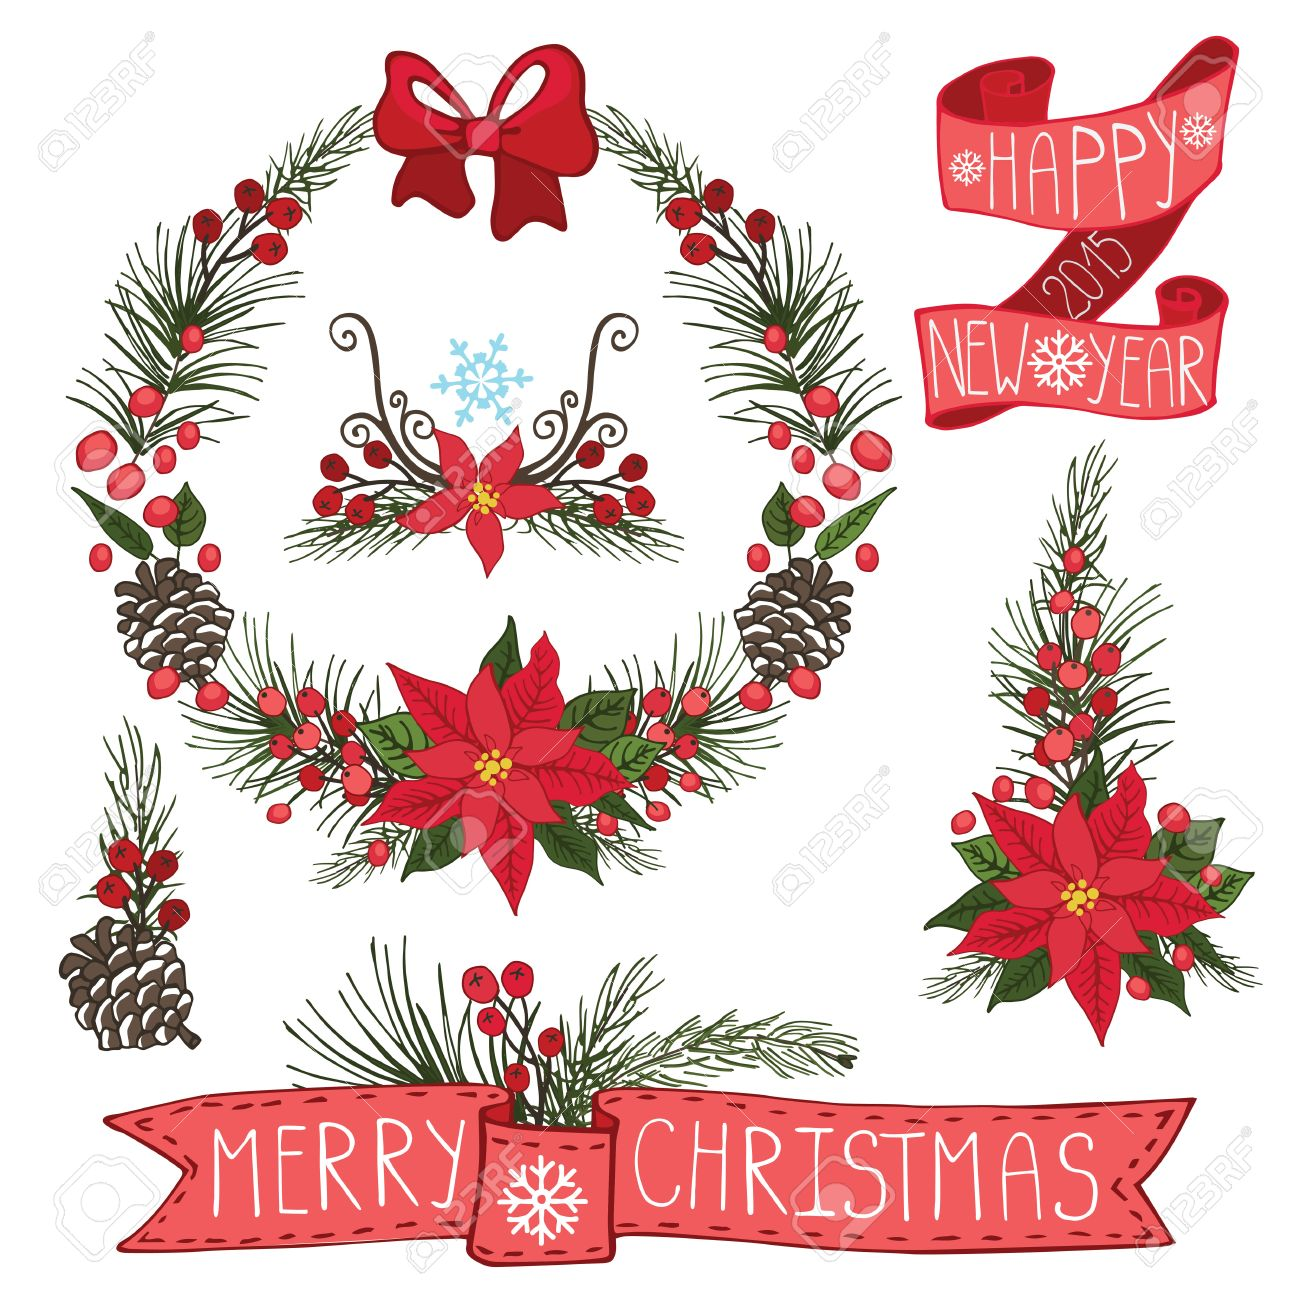 merry christmas and happy new year wreath groupborderflowersspruce